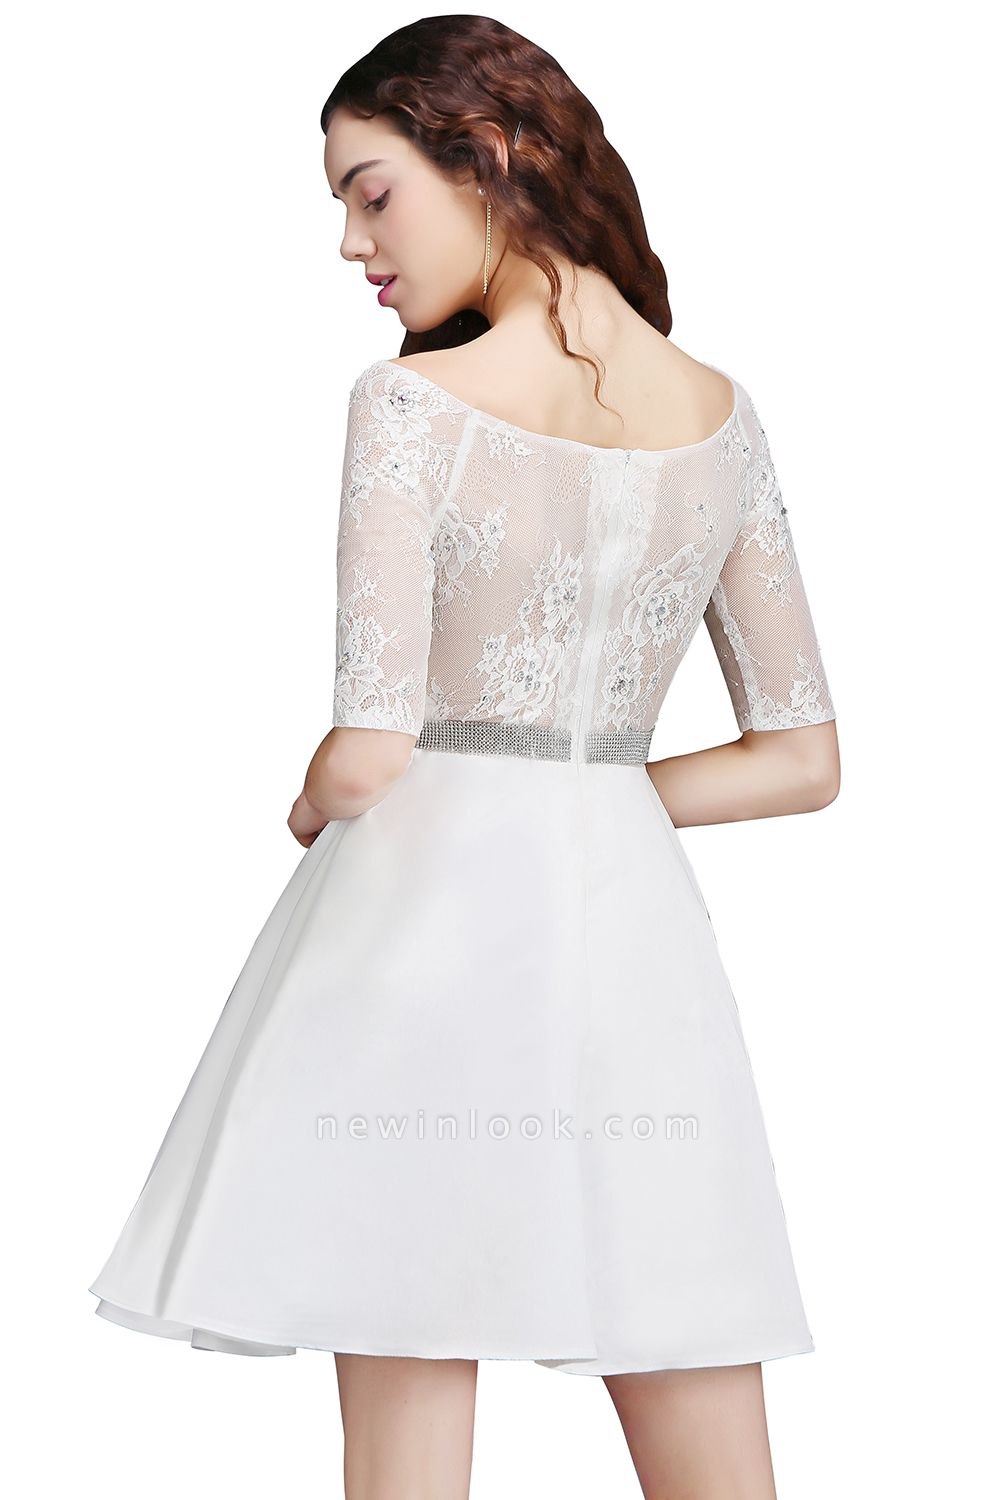 ALICIA | A Line Jewel White Short Sleeve Satin Quince Dama Dresses With Lace